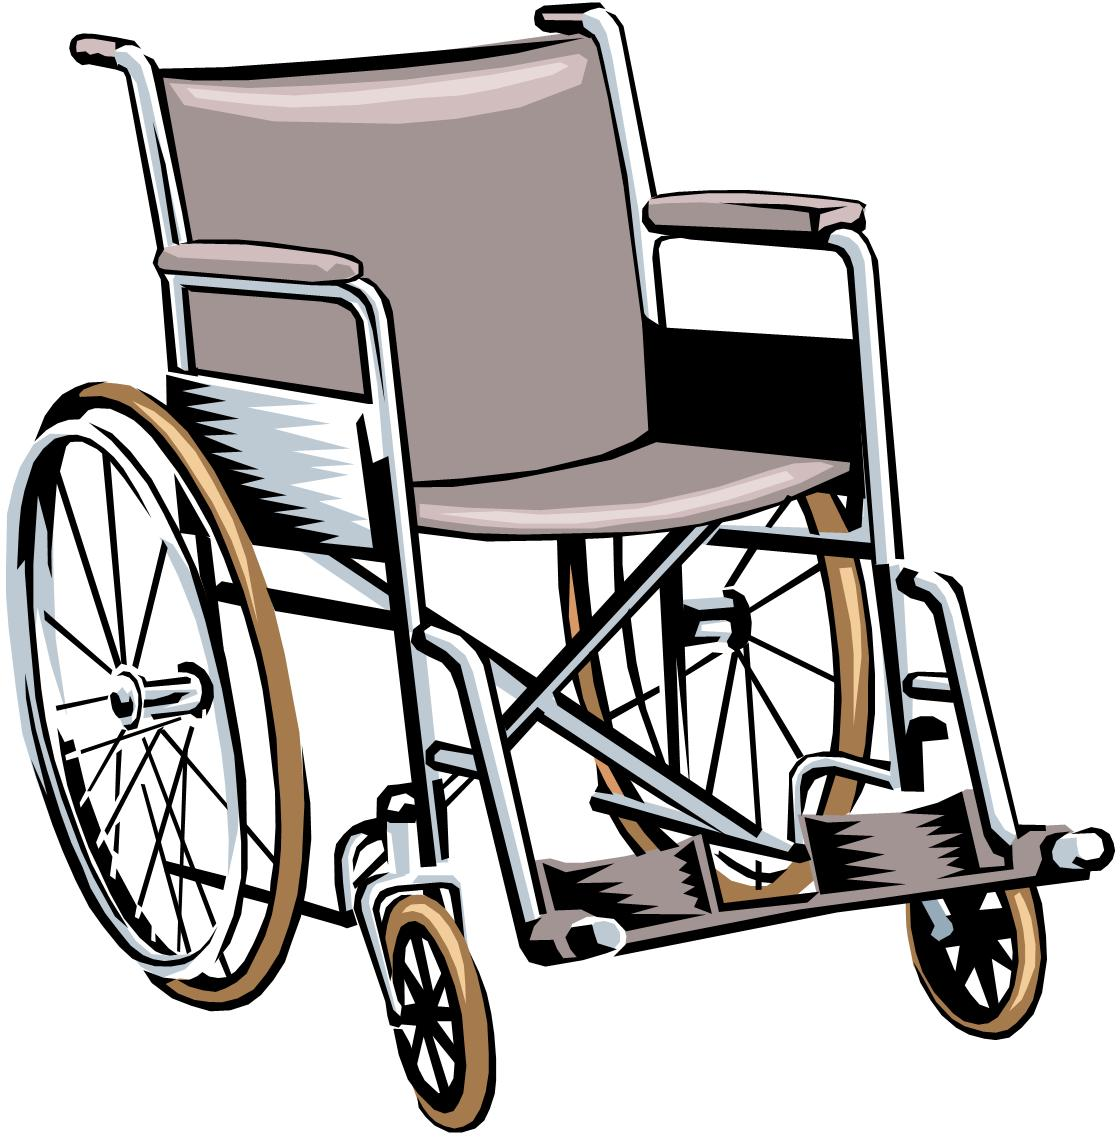 wheelchair clipart vector 20 free Cliparts | Download ...